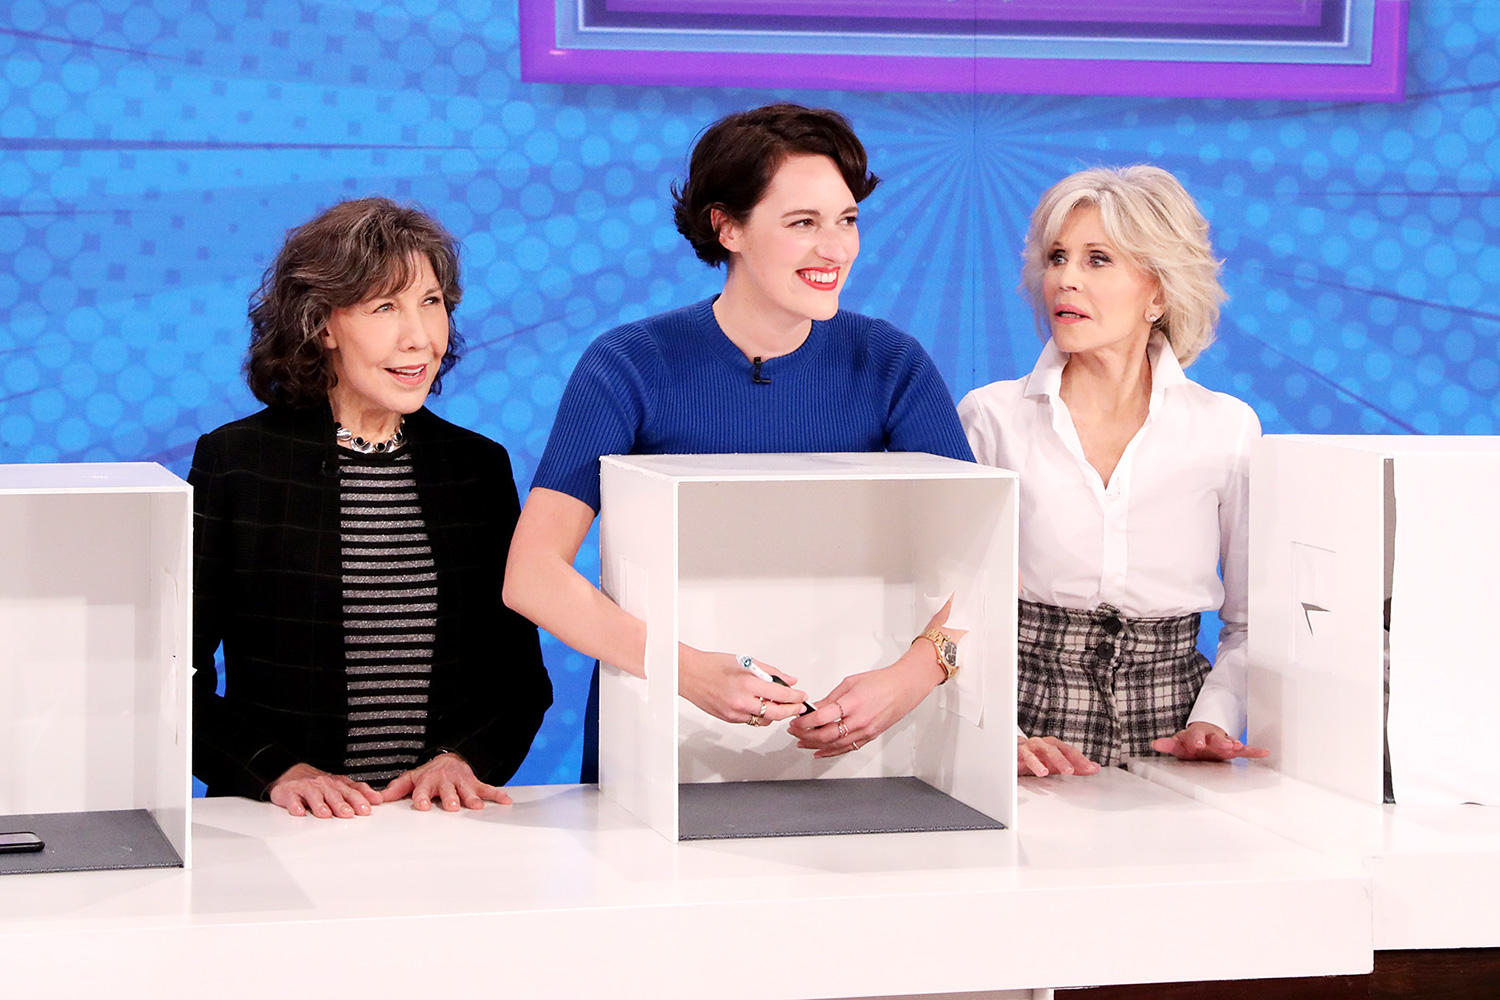 """Phoebe Waller-Bridge and Hollywood icons and stars of """"Grace and Frankie"""" Jane Fonda and Lily Tomlin fill in as guest hosts on """"The Ellen DeGeneres Show"""" airing Friday, January 17th"""